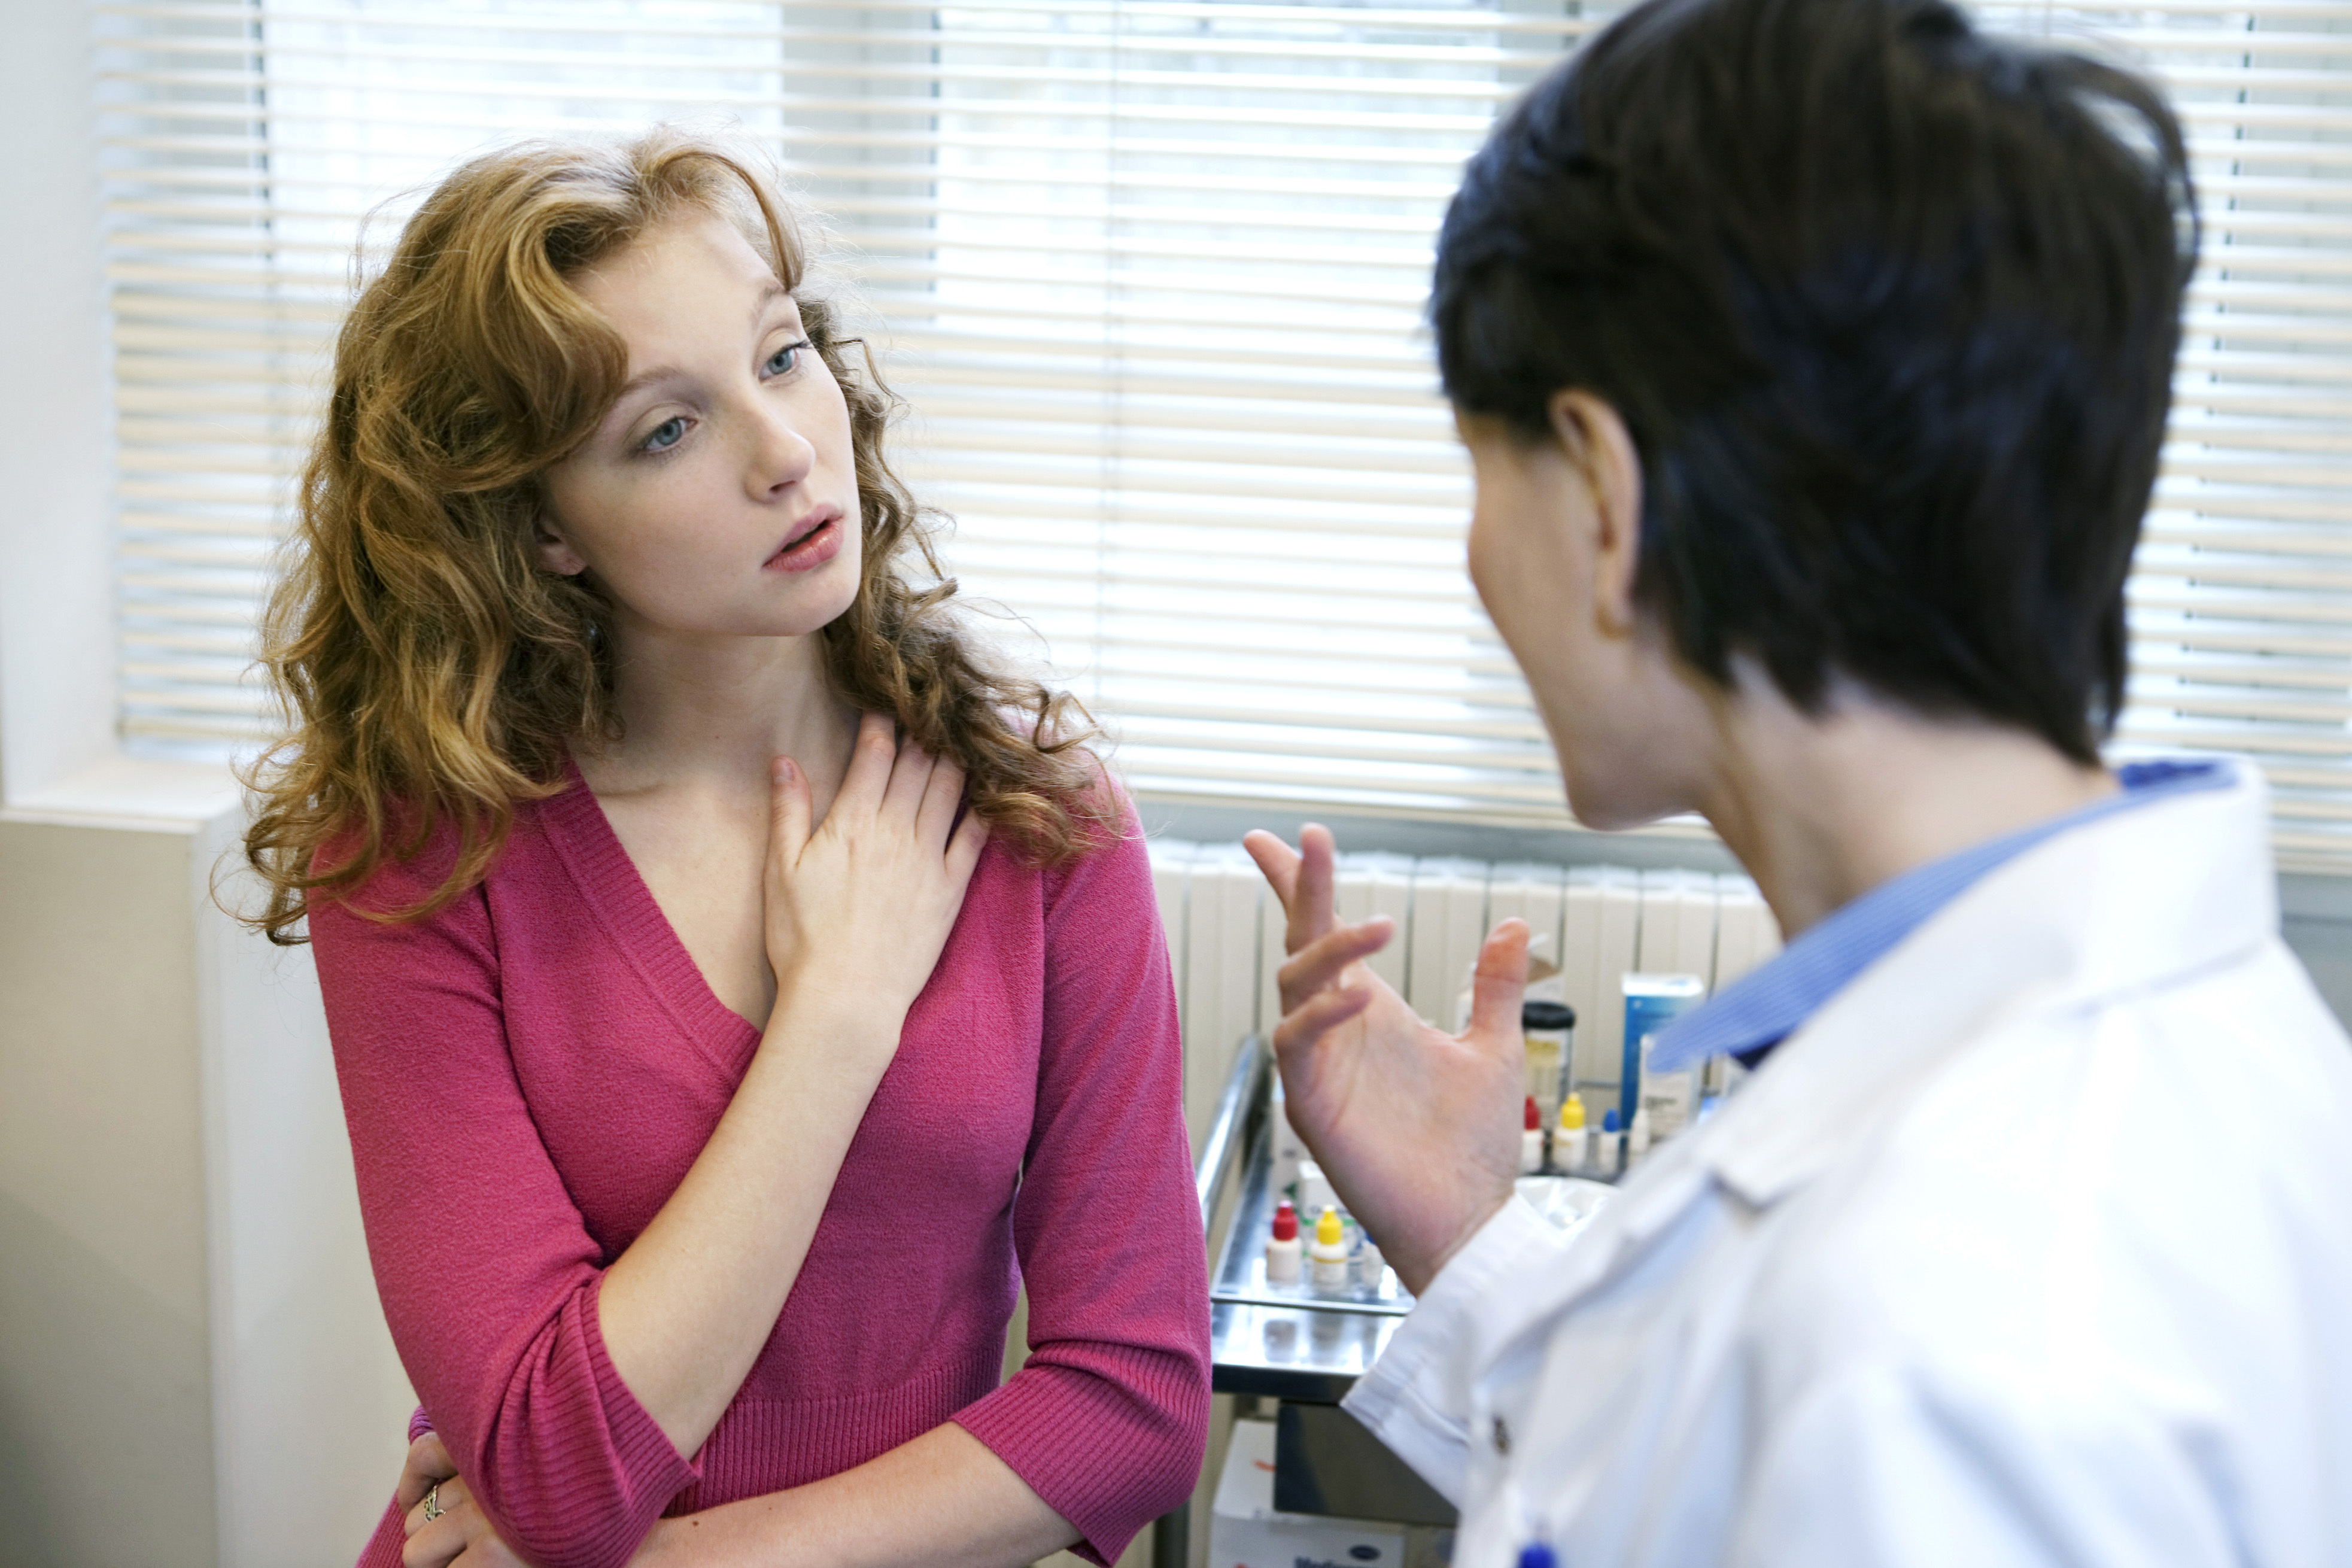 Woman with red hair and pink shirt talks to a doctor